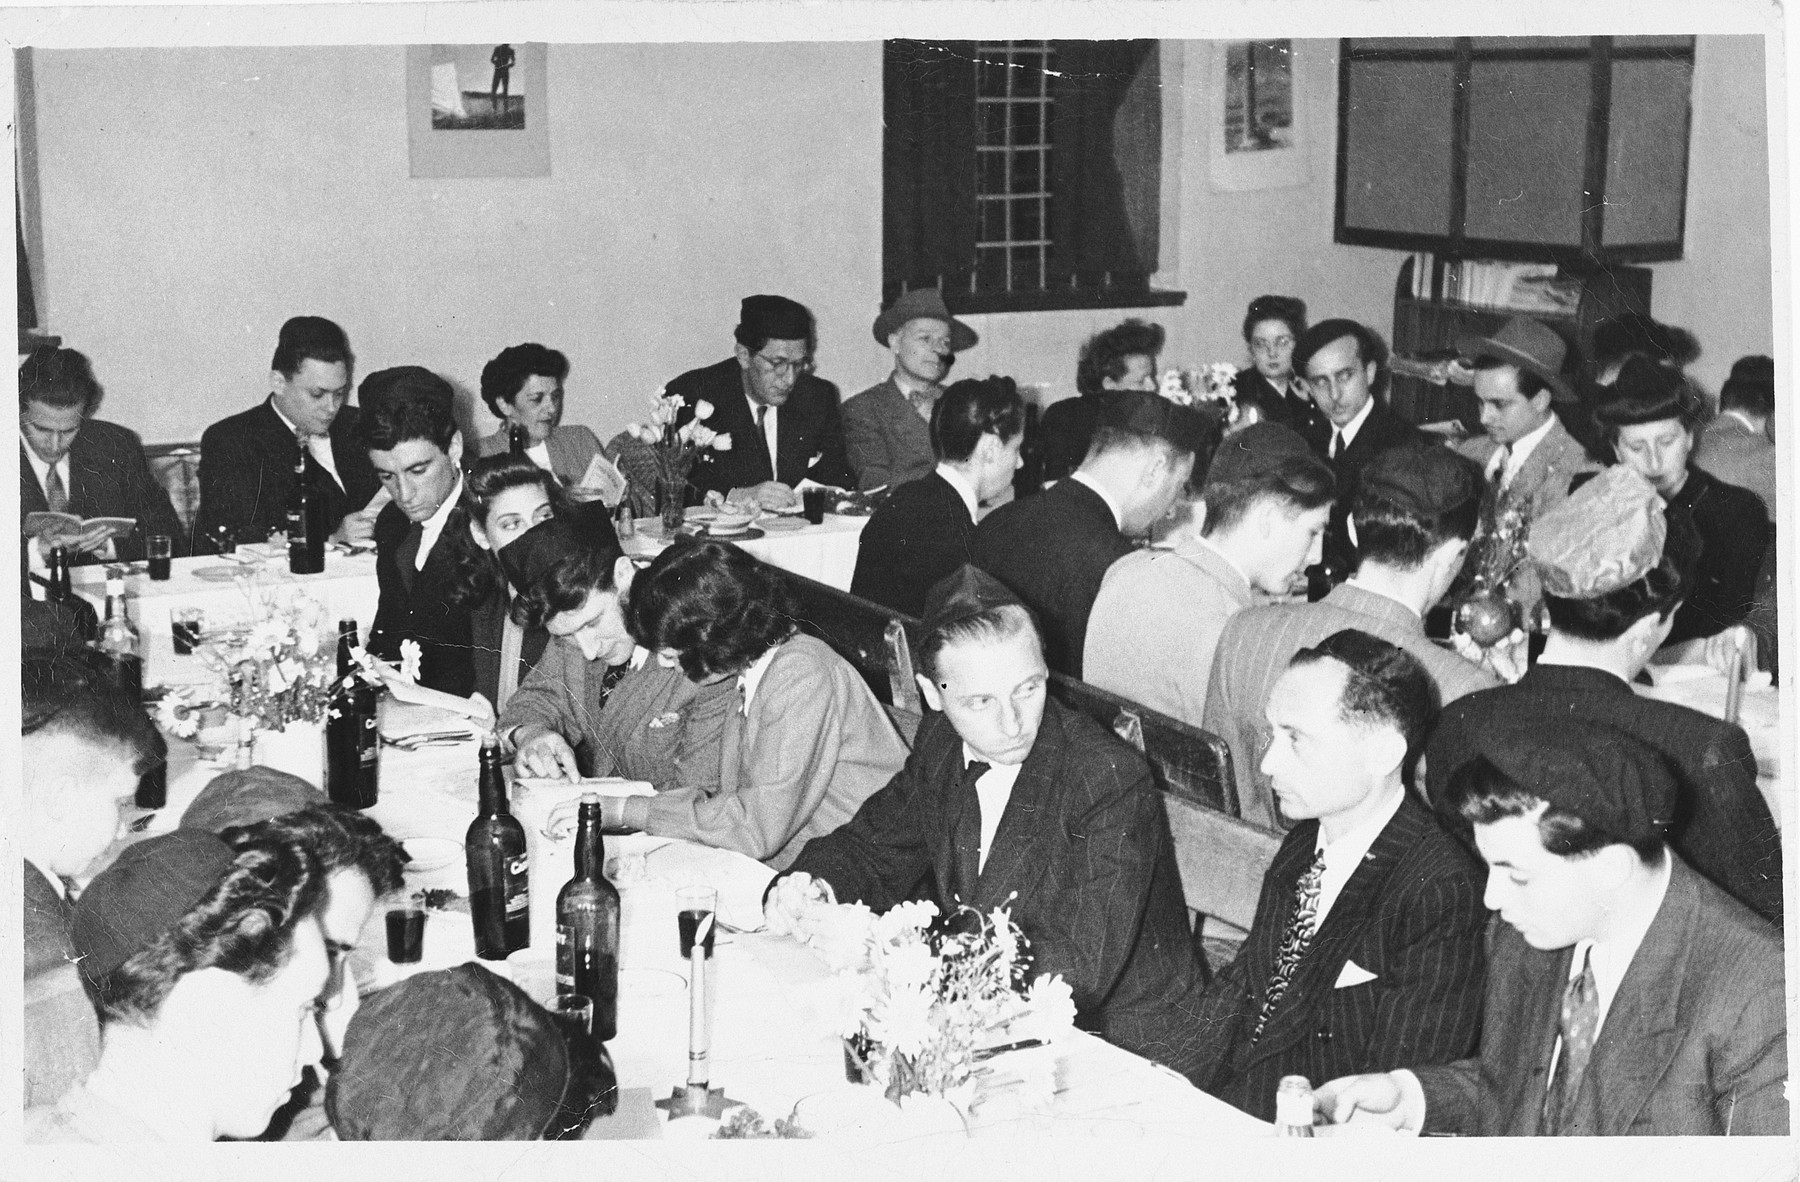 Jewish refugees attend a communal seder in Shanghai.  Among those pictured is Alfred Brosan (fifth from the right in the middle row.)